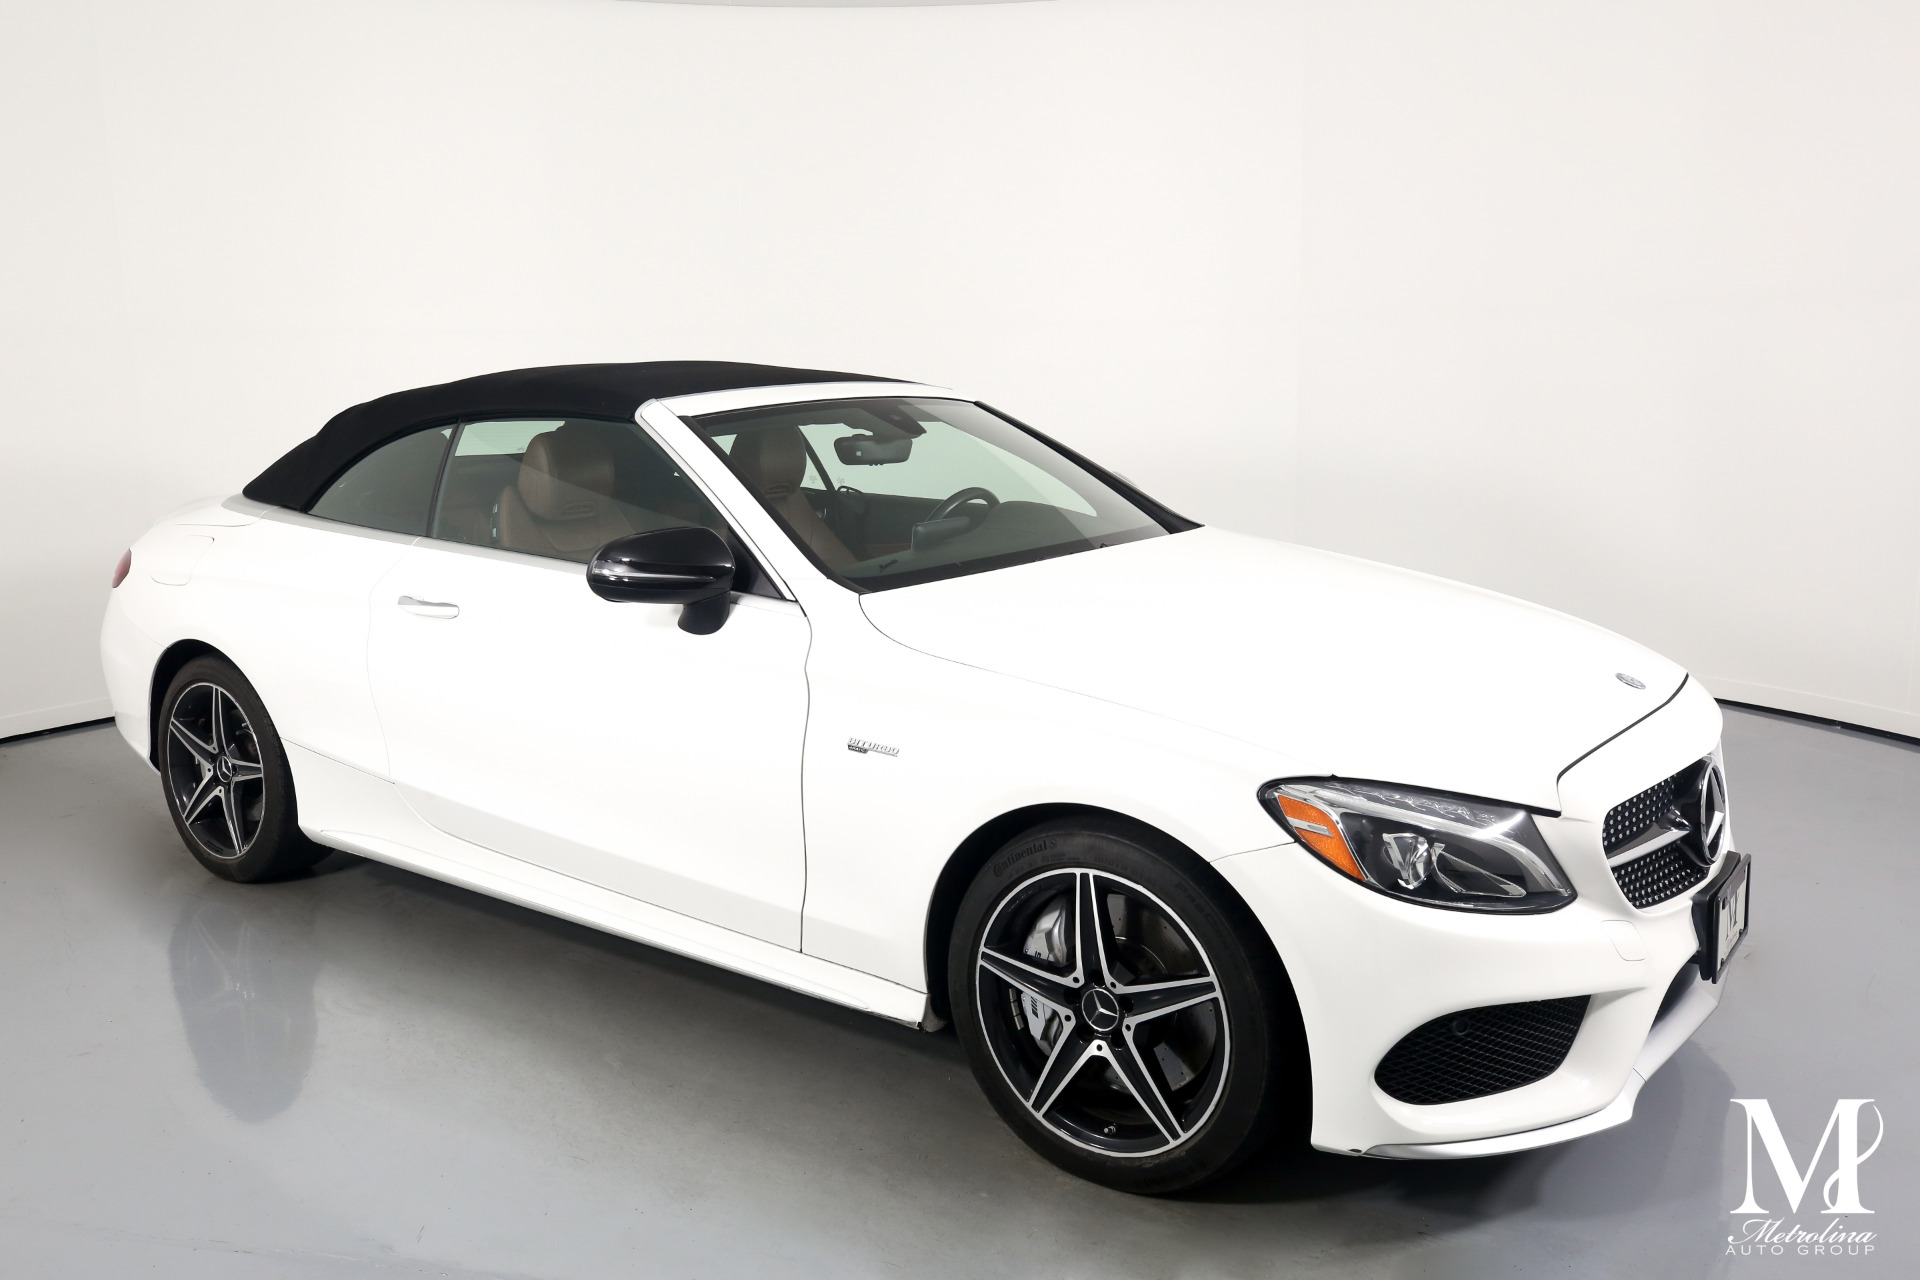 Used 2017 Mercedes-Benz C-Class AMG C 43 for sale $59,996 at Metrolina Auto Group in Charlotte NC 28217 - 2